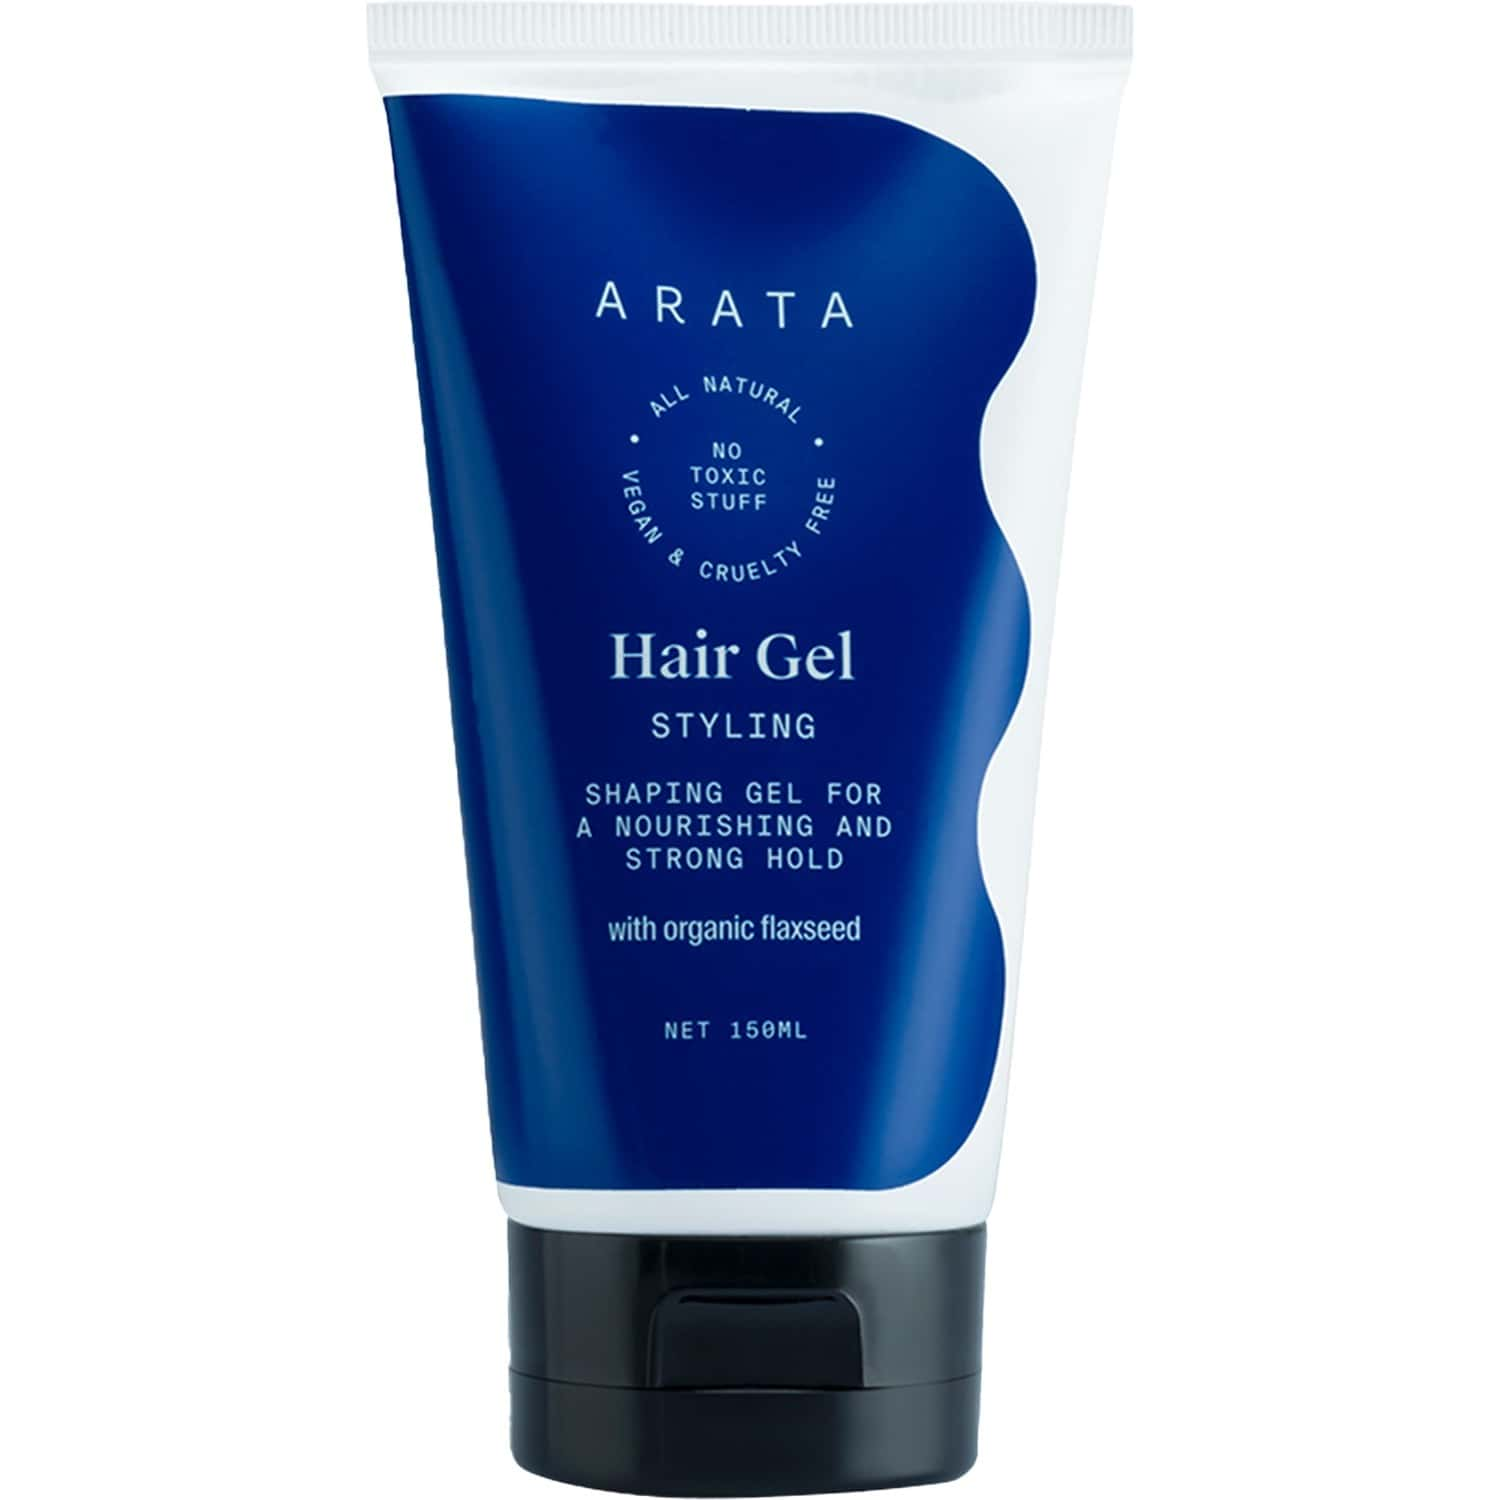 Arata Natural Hair Gel For Studio Styling,shaping,strong Hold & Nourishment With Organic Flaxseed & Olive Extracts For Women & Men- (150 Ml)